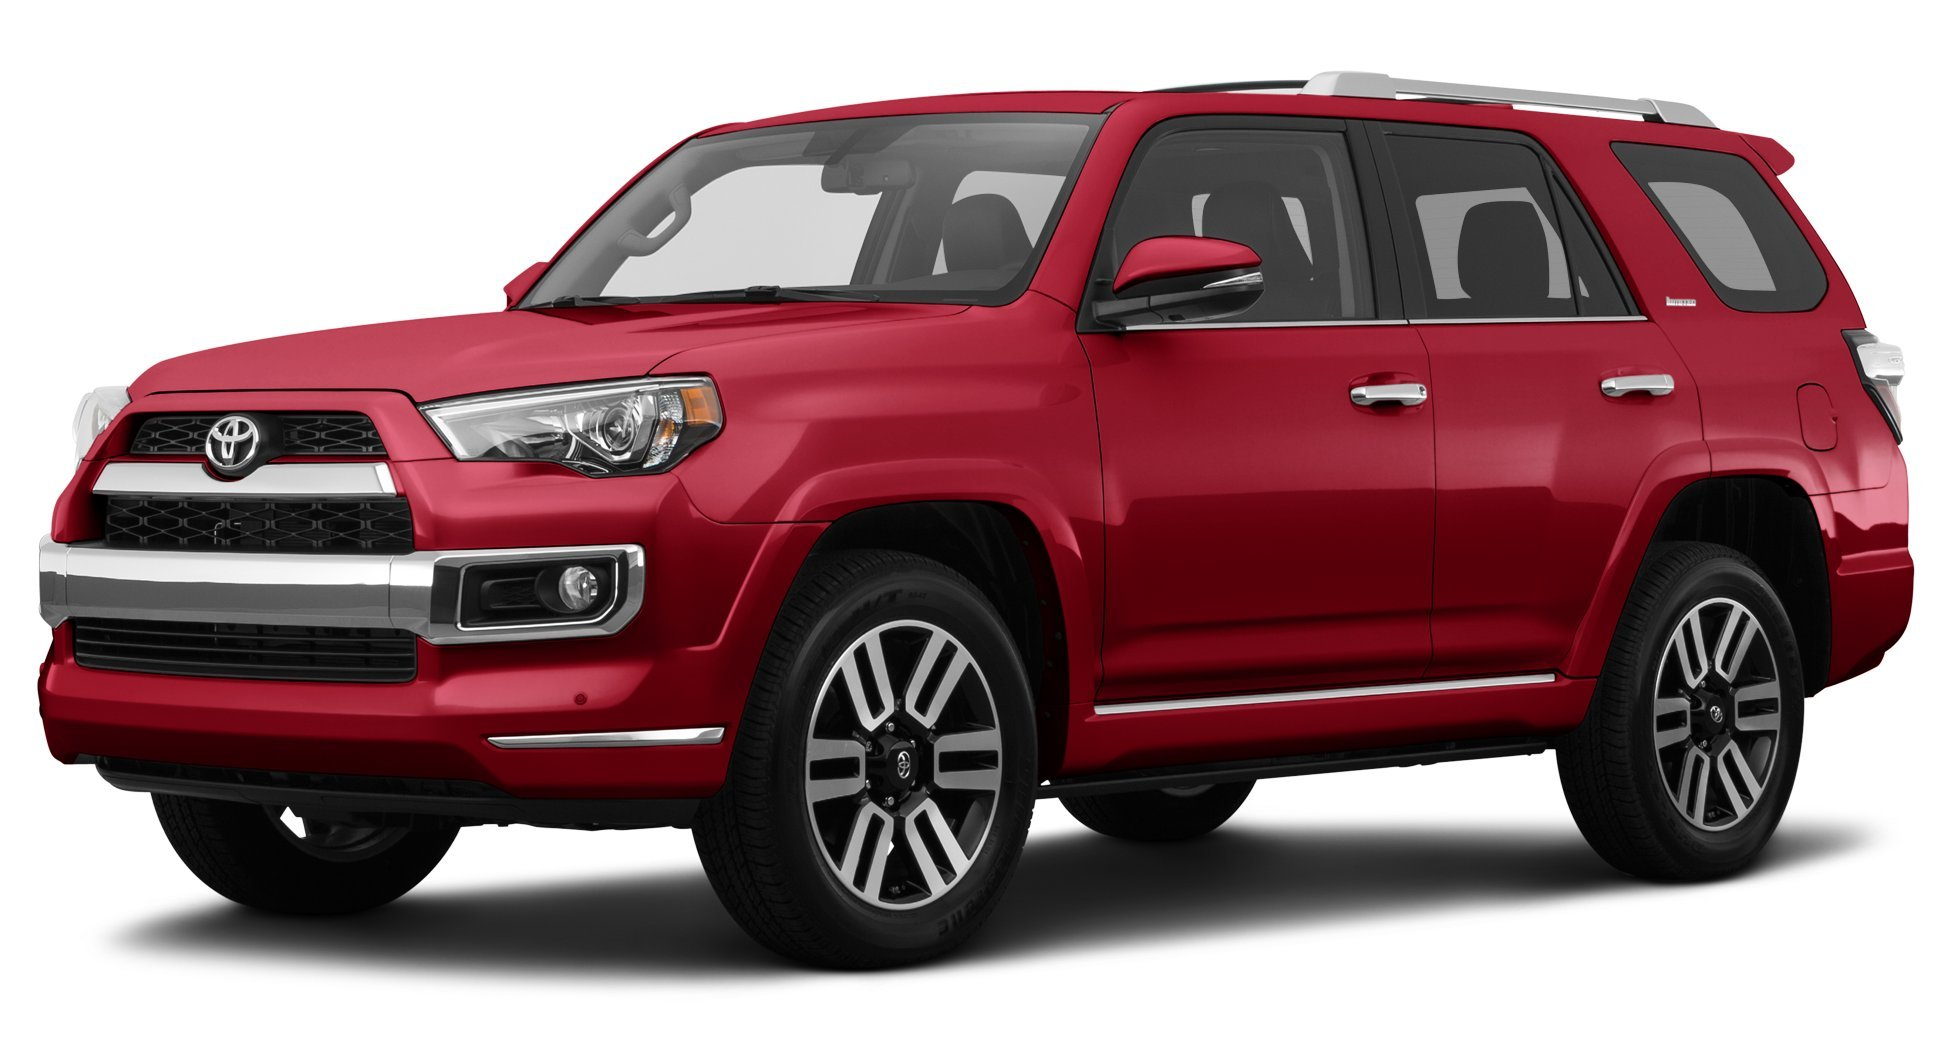 2016 toyota 4runner reviews images and specs. Black Bedroom Furniture Sets. Home Design Ideas